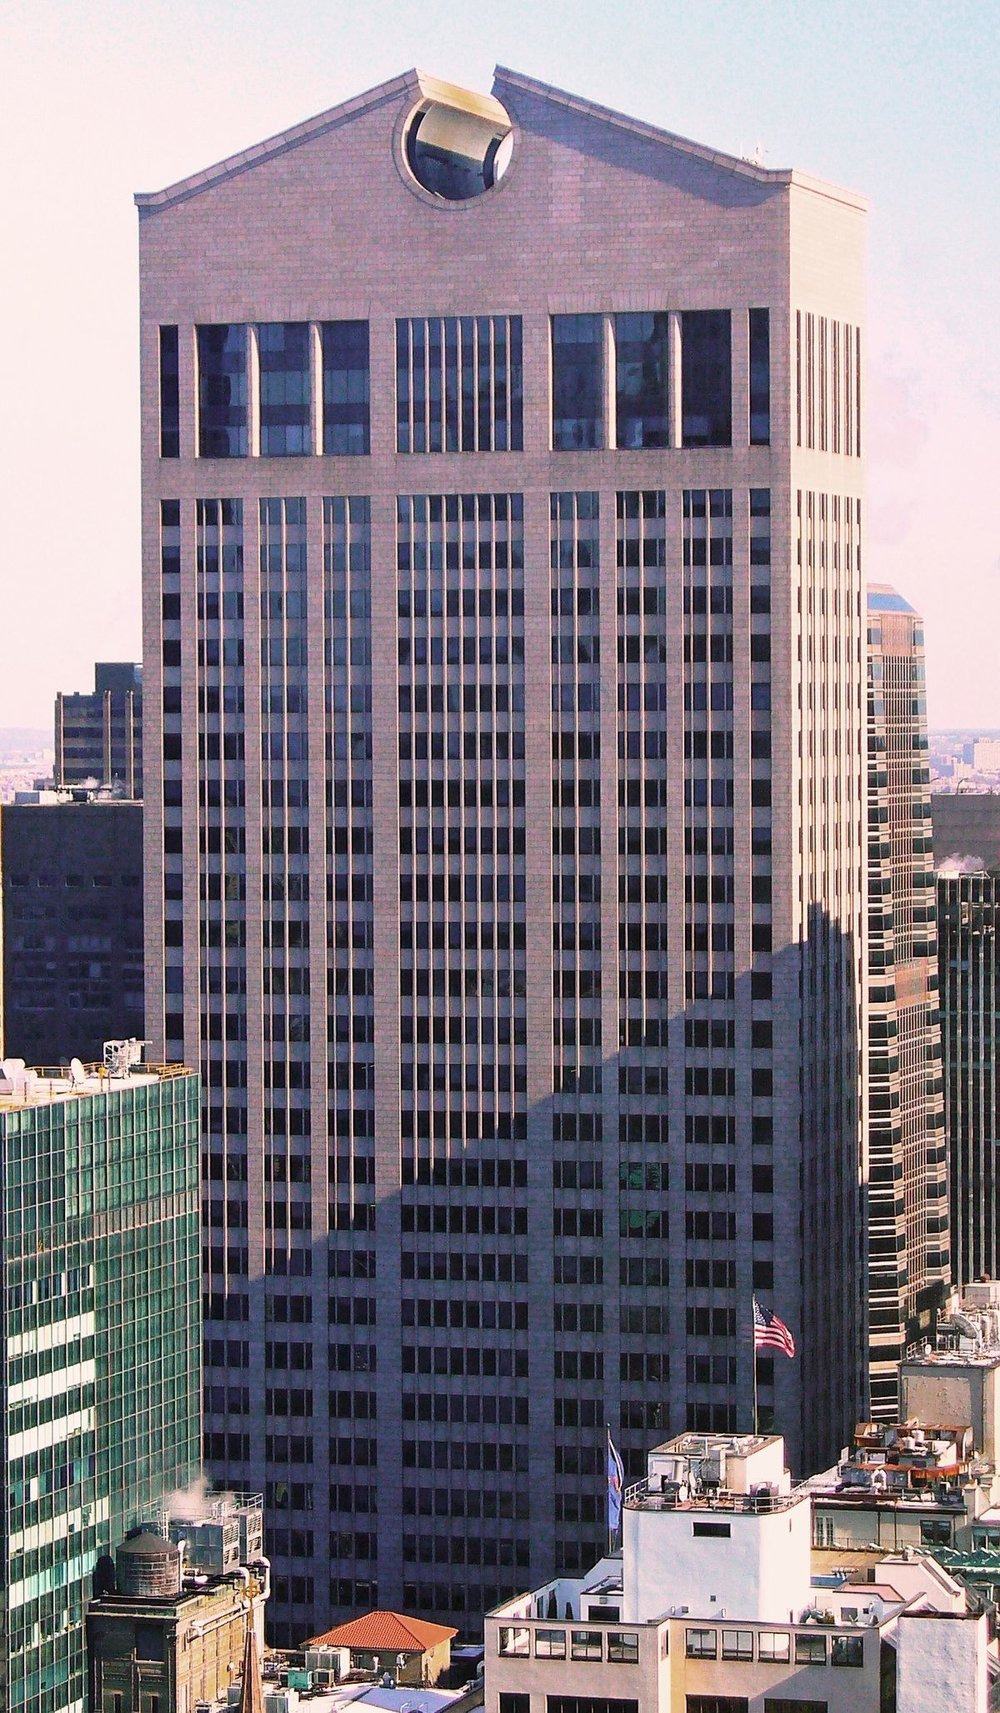 550 Madison Avenue, Philip Johnson